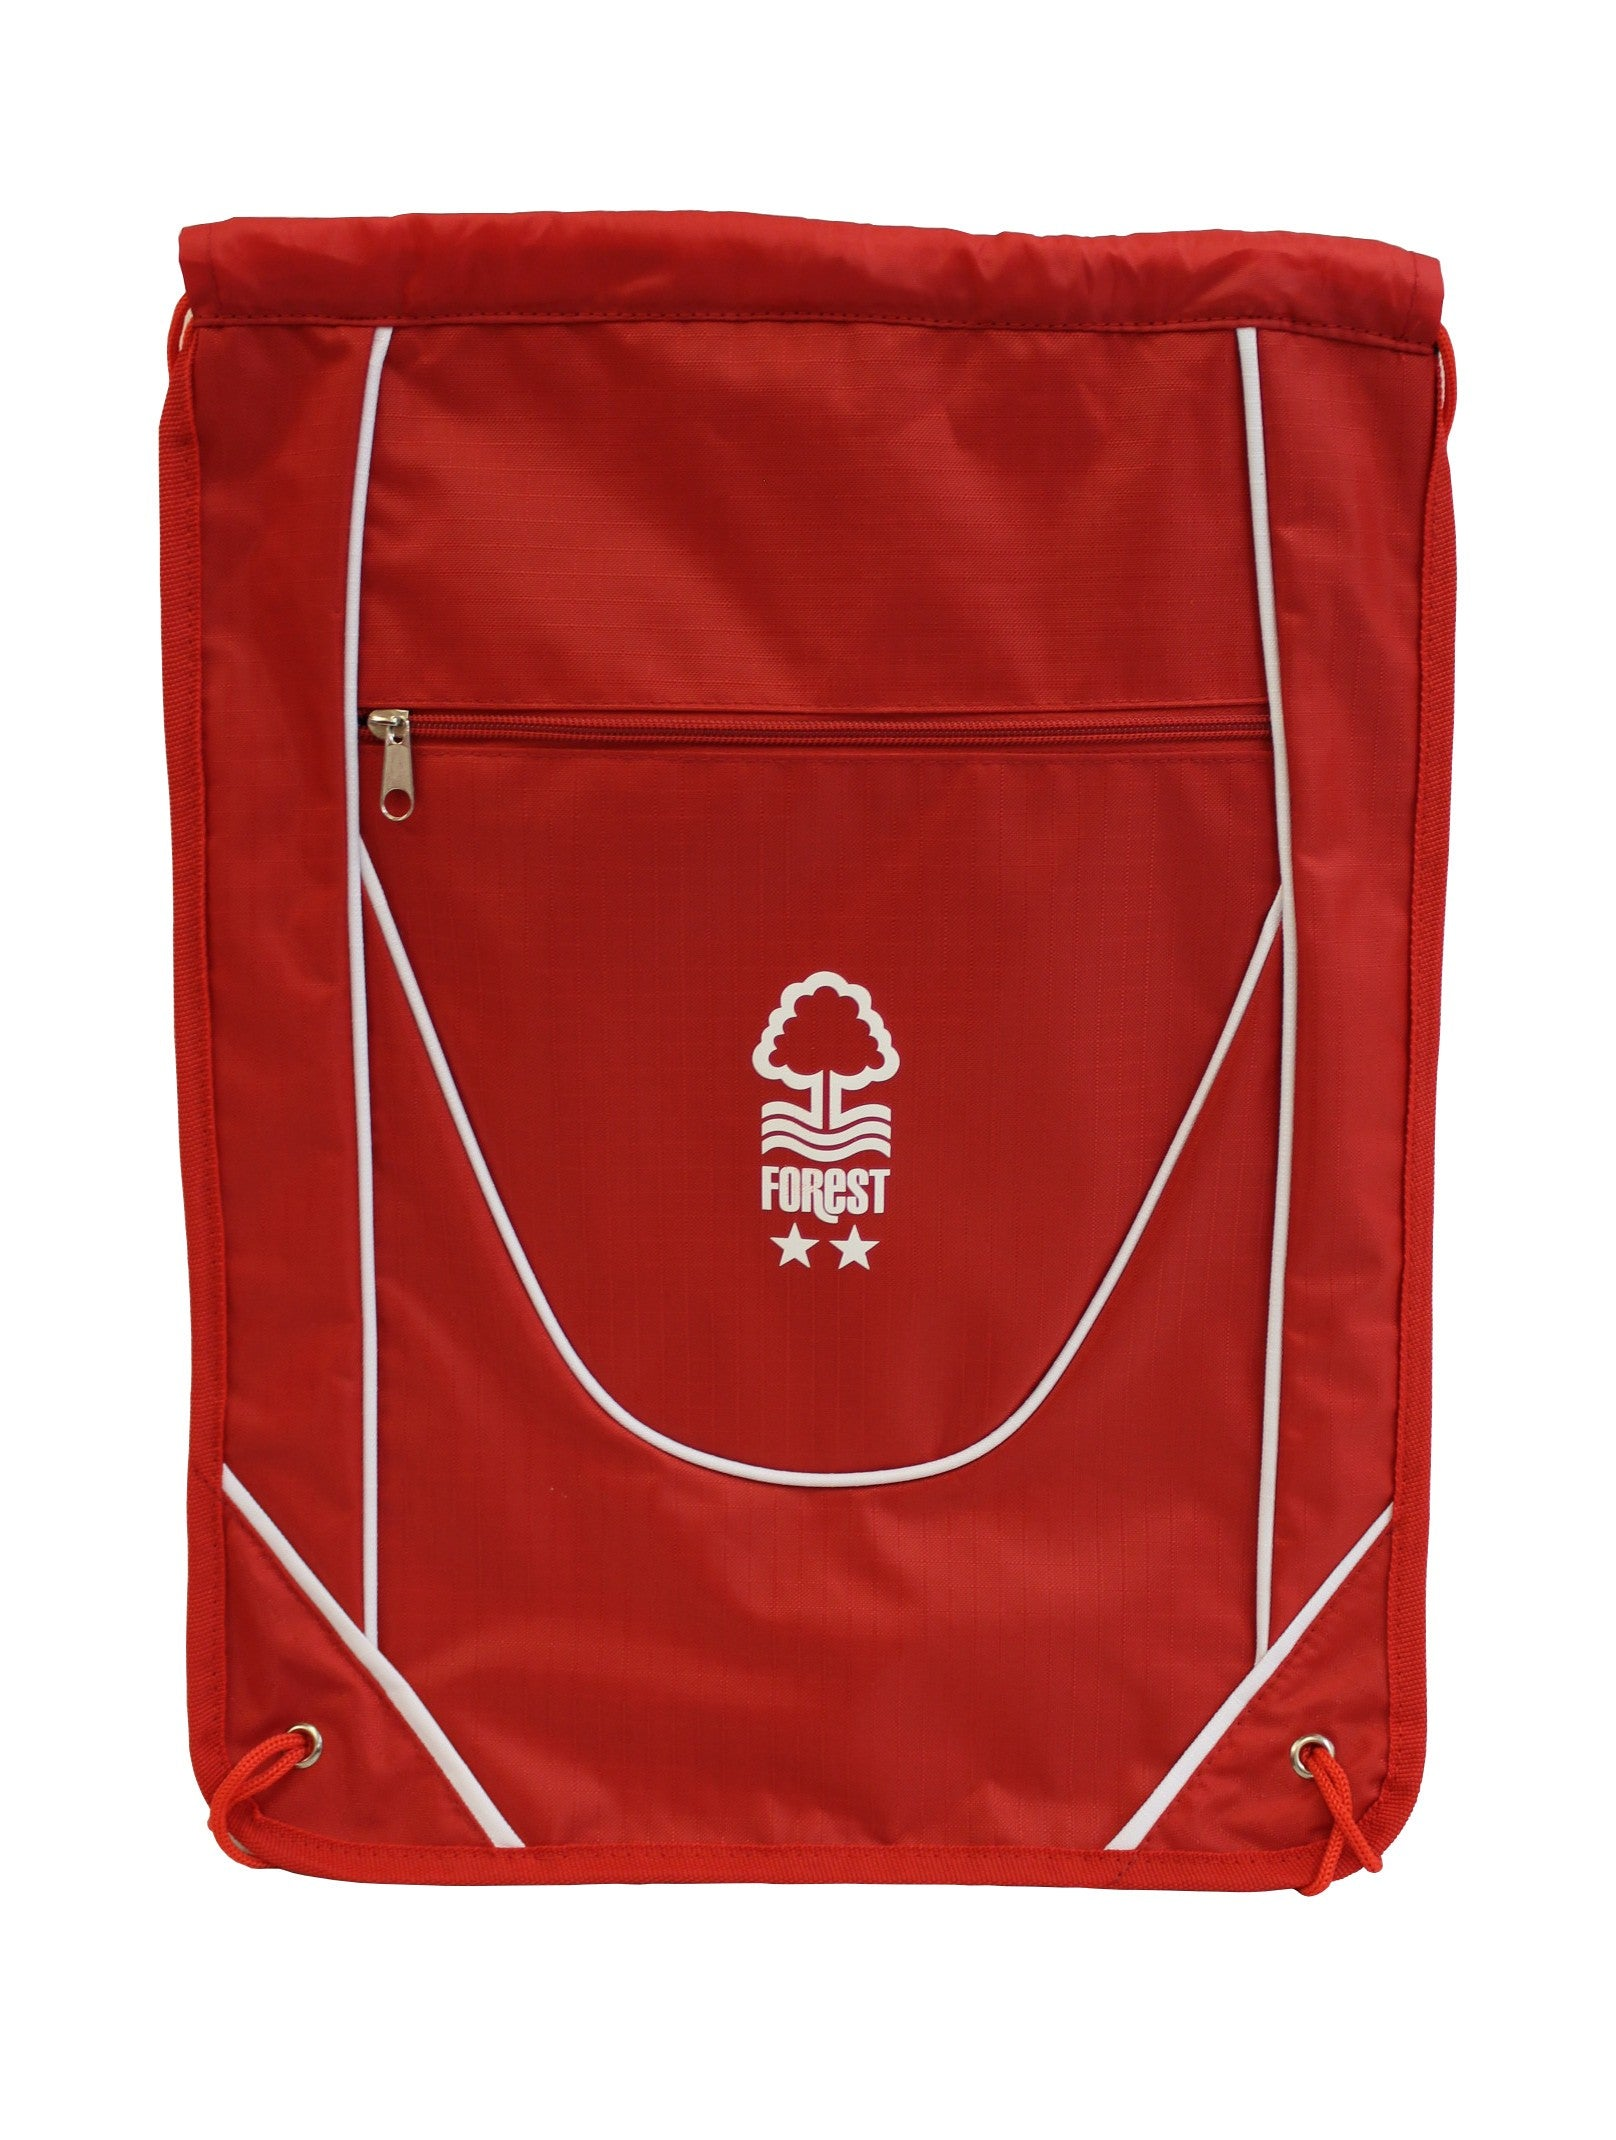 NFFC Red Core Gymbag - Nottingham Forest